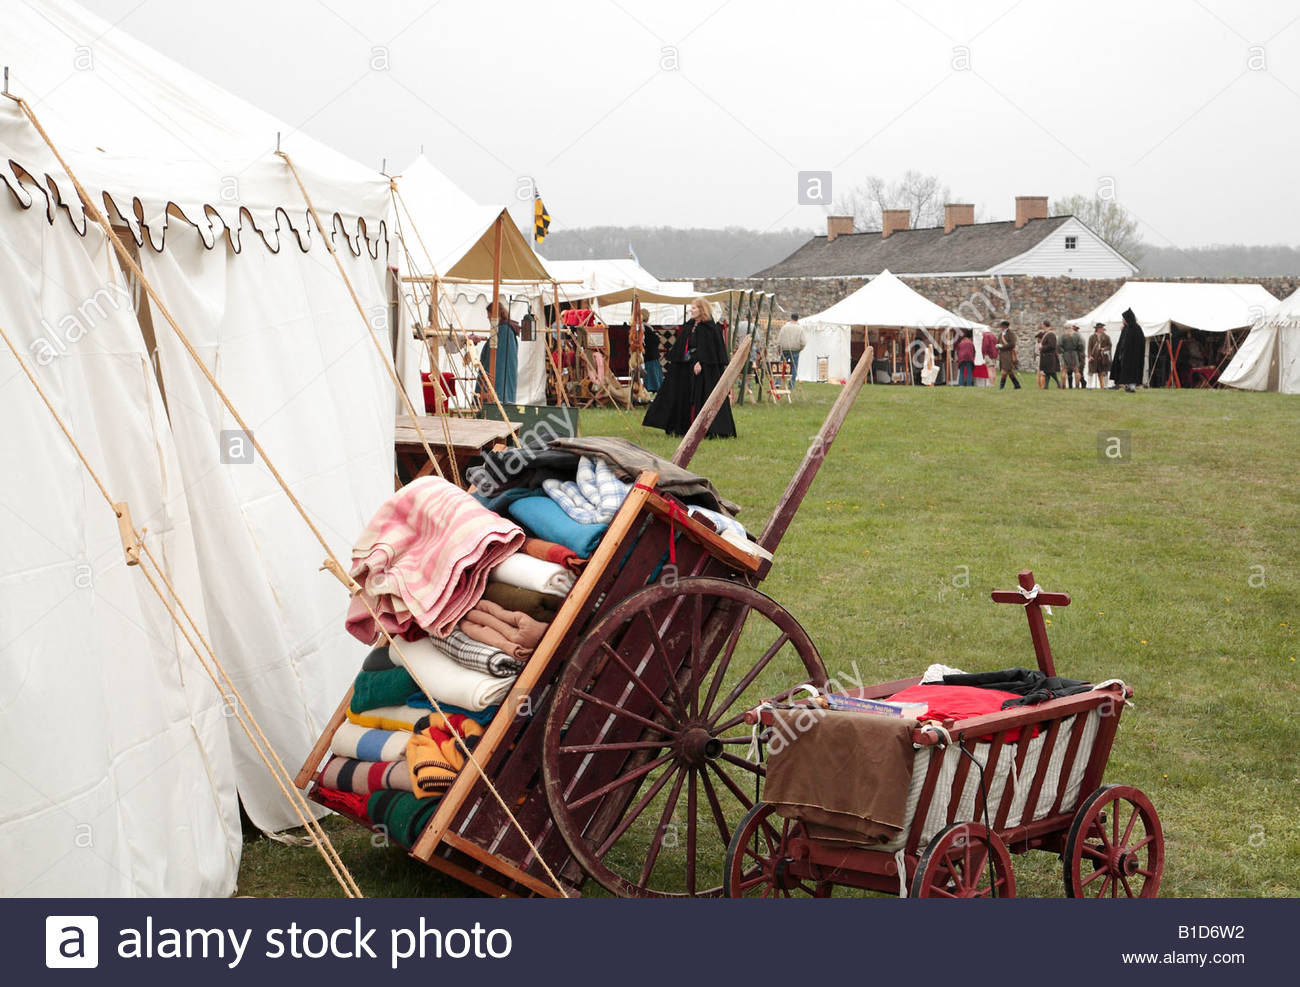 Sutlers' booths at the Market Fair at an eighteenth-century fort in